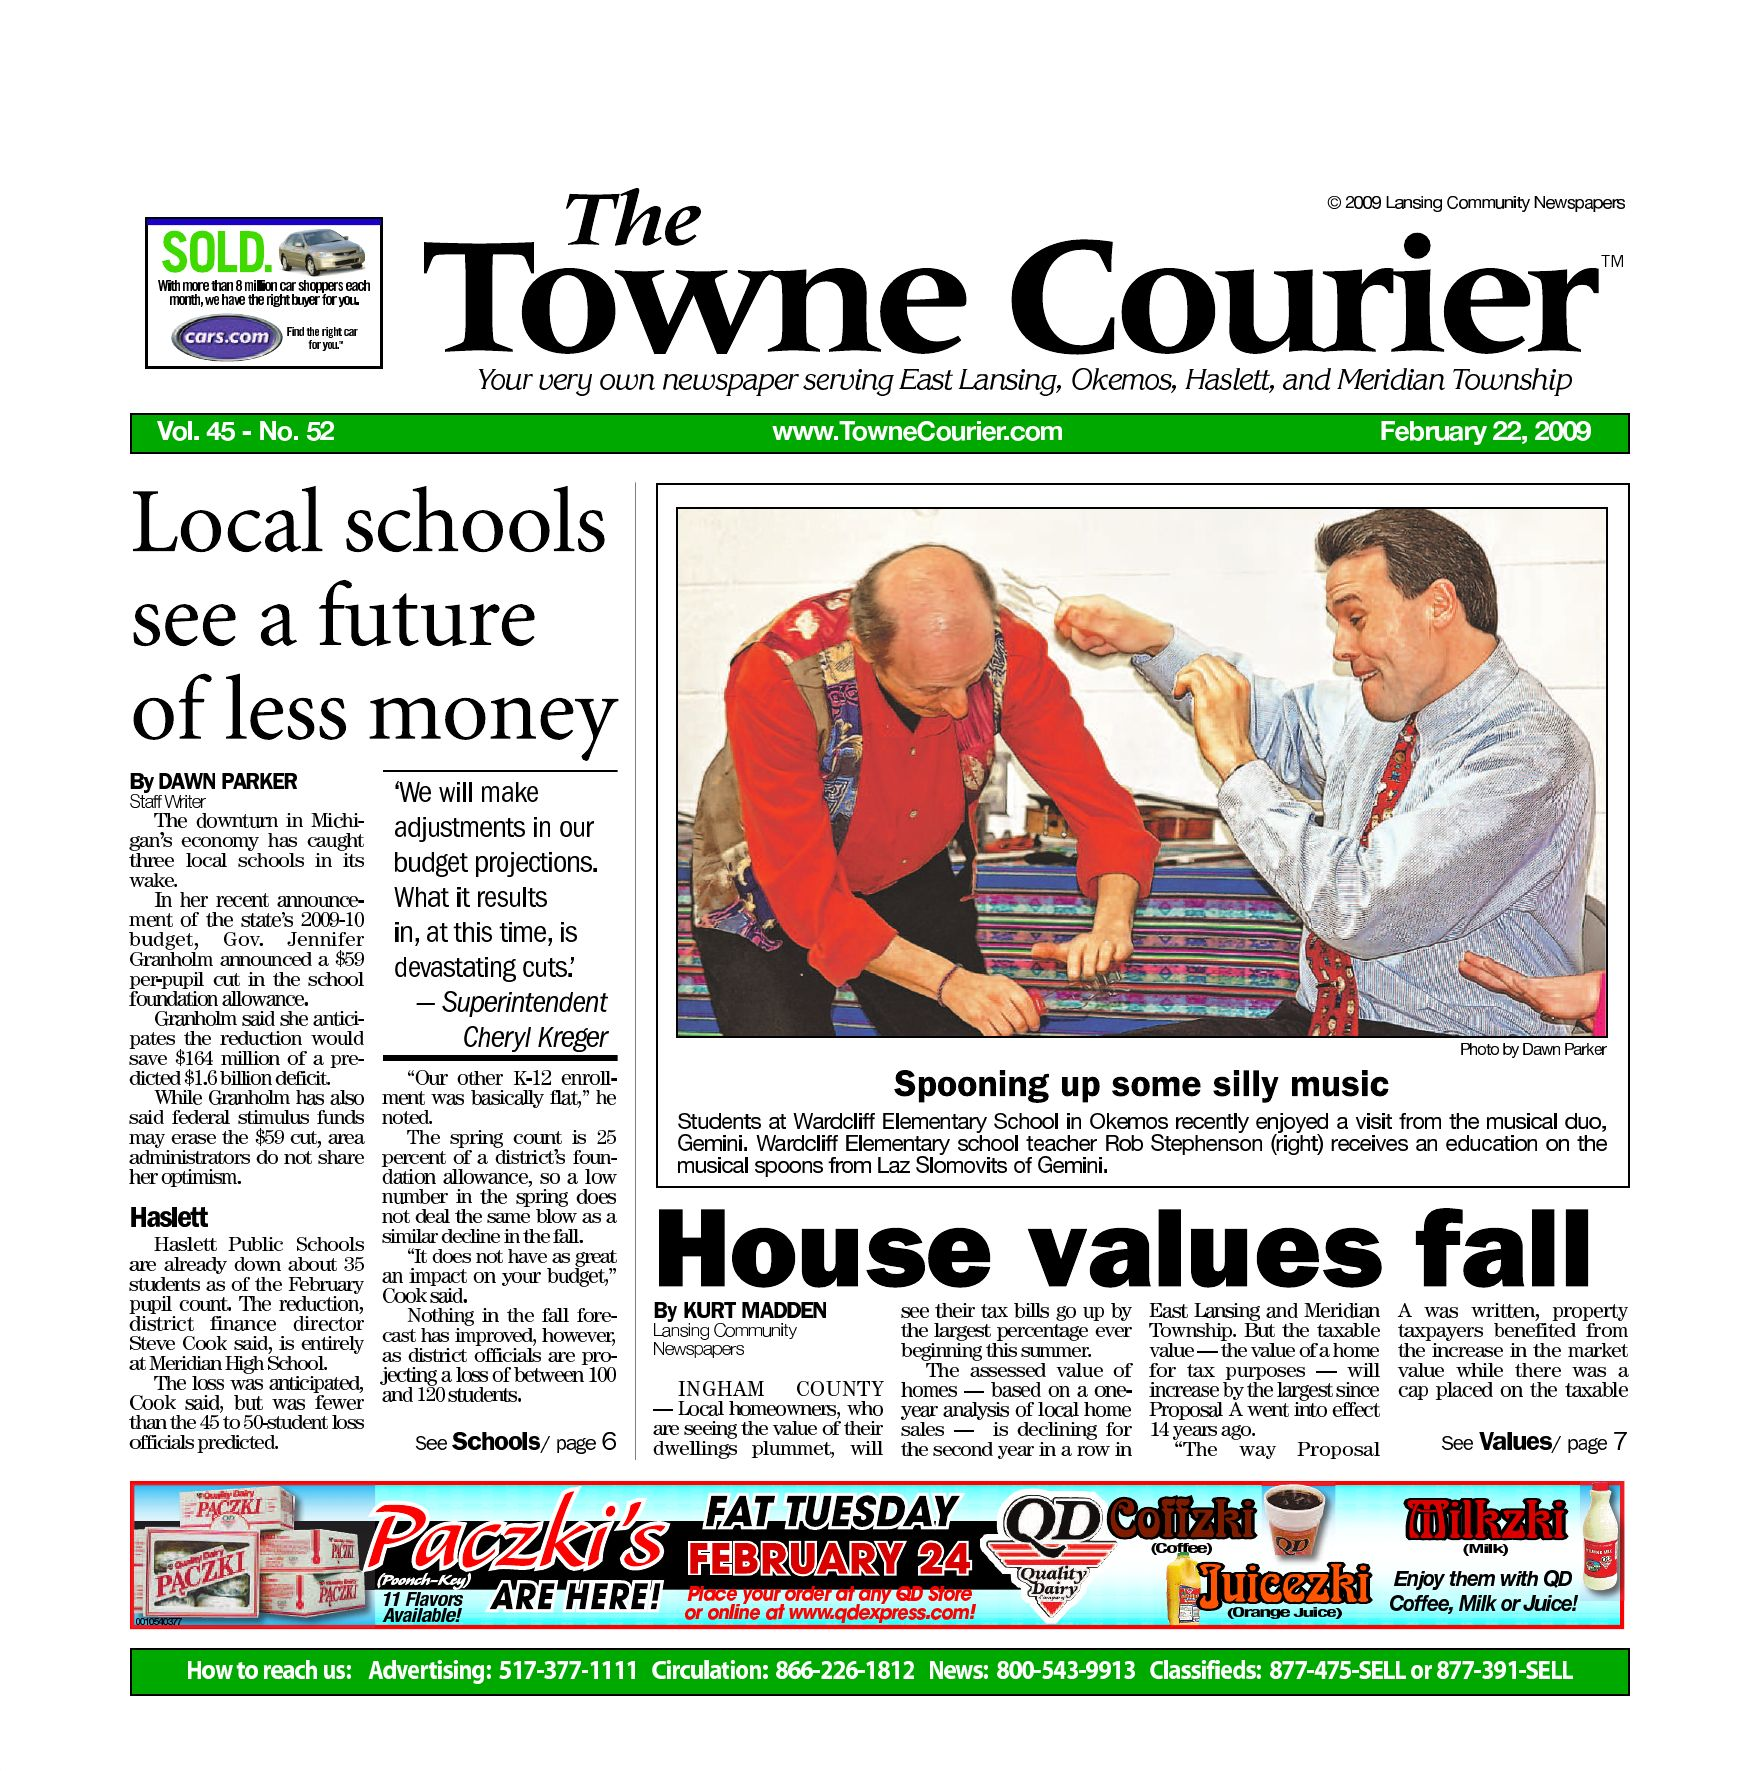 tc_02_22_09 by Lansing State Journal - issuu